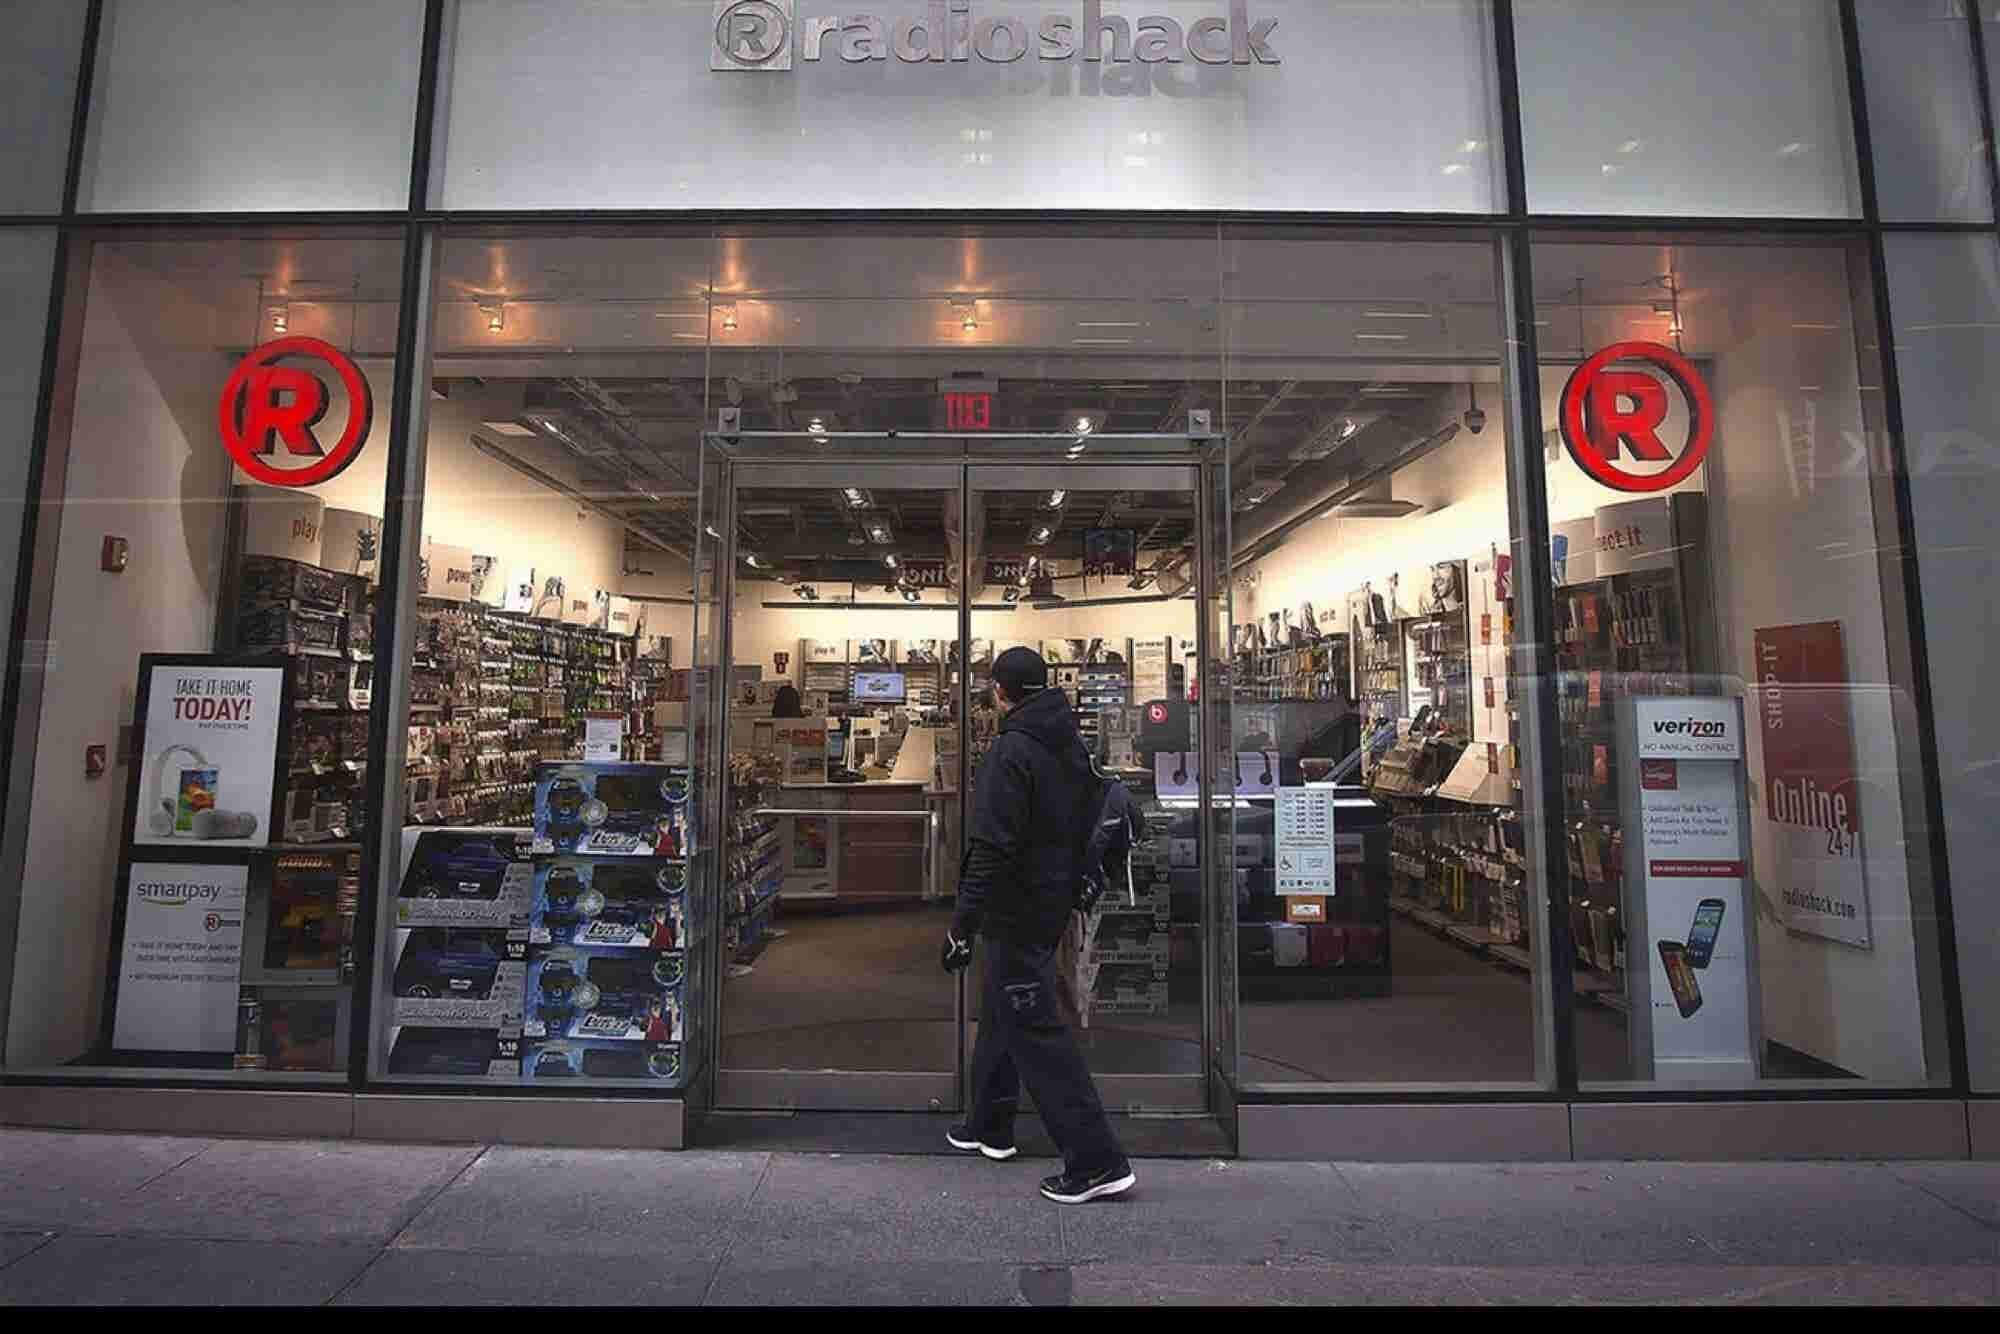 After Nearly 100 Years in Business, RadioShack Files for Bankruptcy